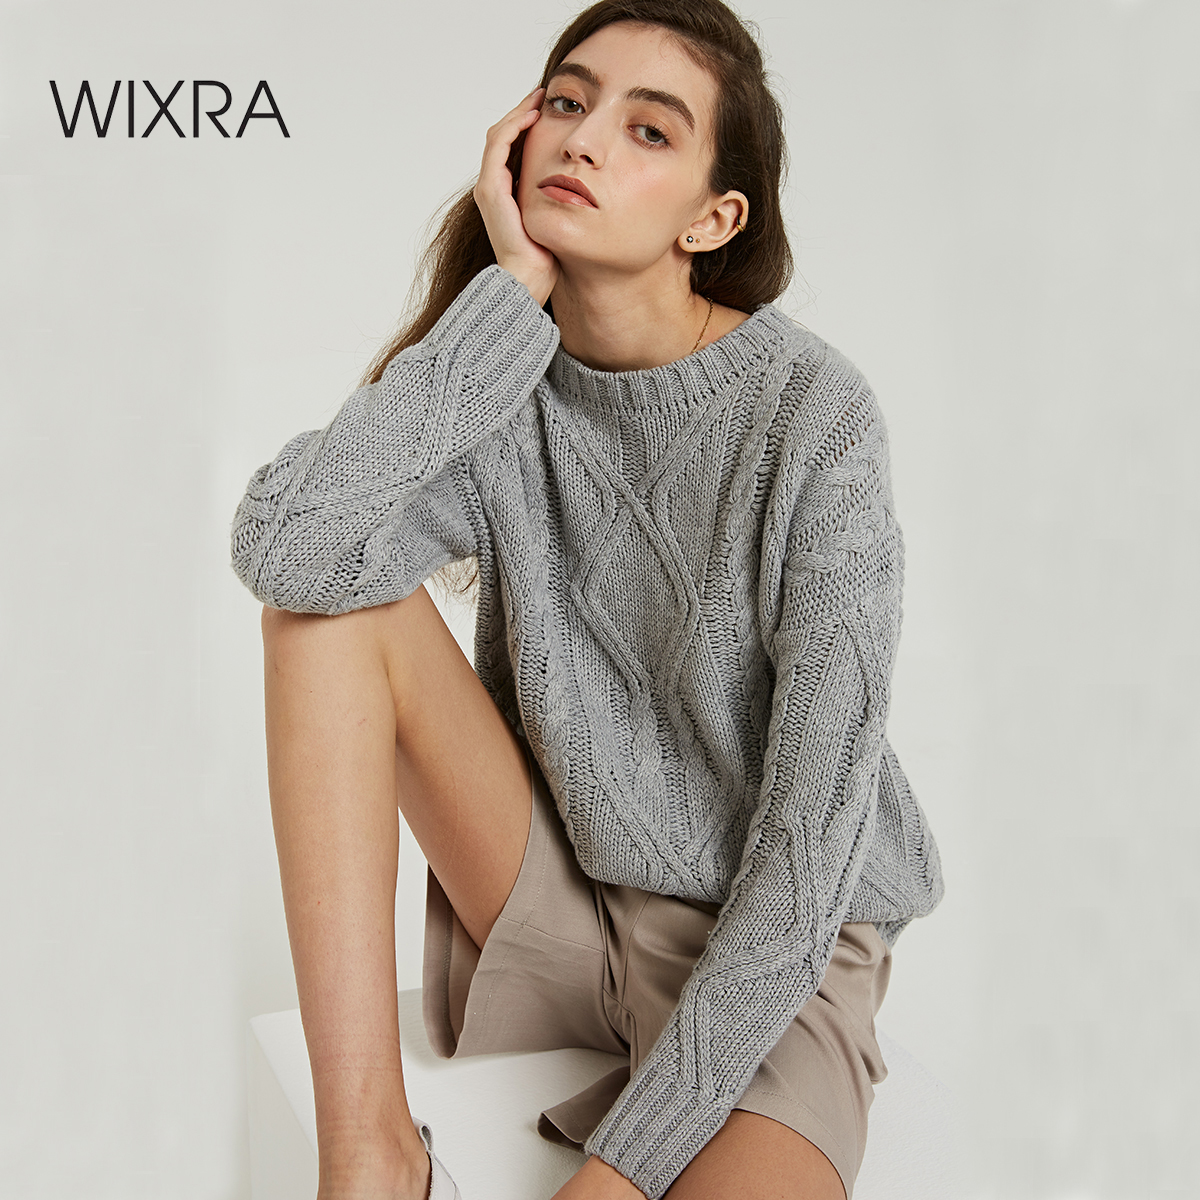 Wixra Solid Sweaters 2019 Autumn Winter Female O Neck Casual Warm Ladies Knitted Sweater Pullovers Women's Jumpers